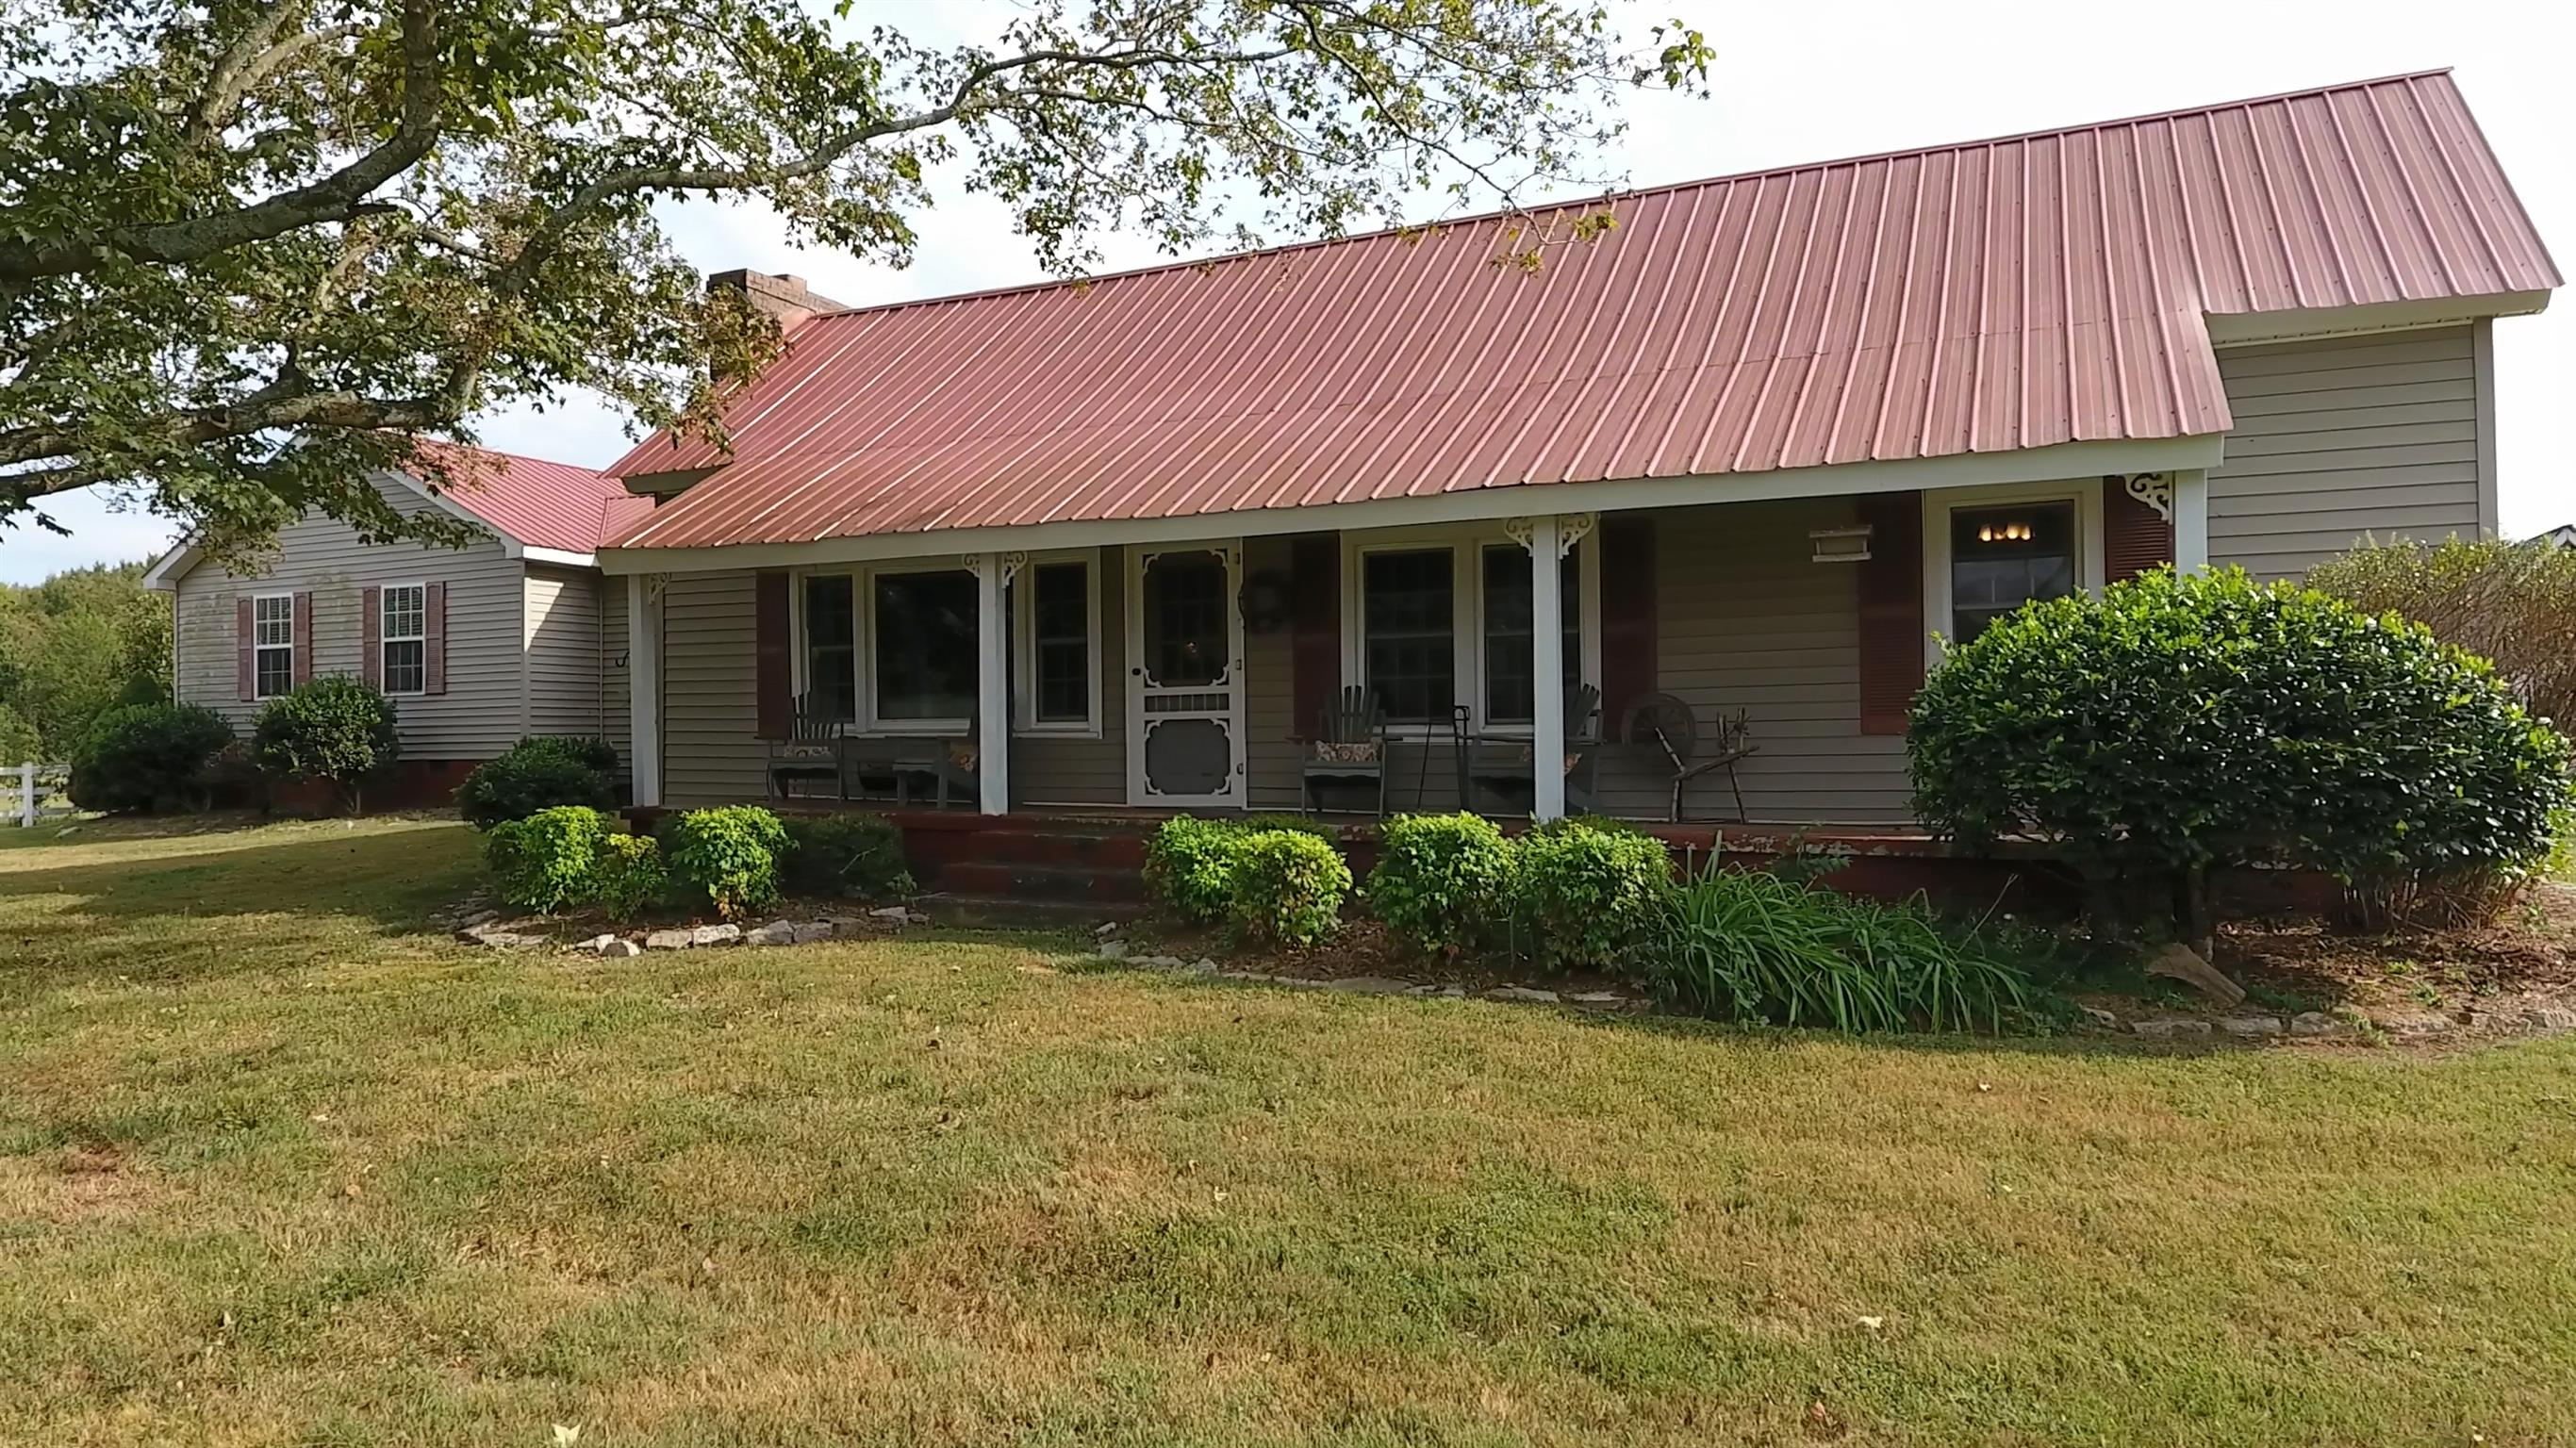 501 Burnt Hill Rd, Unionville, TN 37180 - Unionville, TN real estate listing